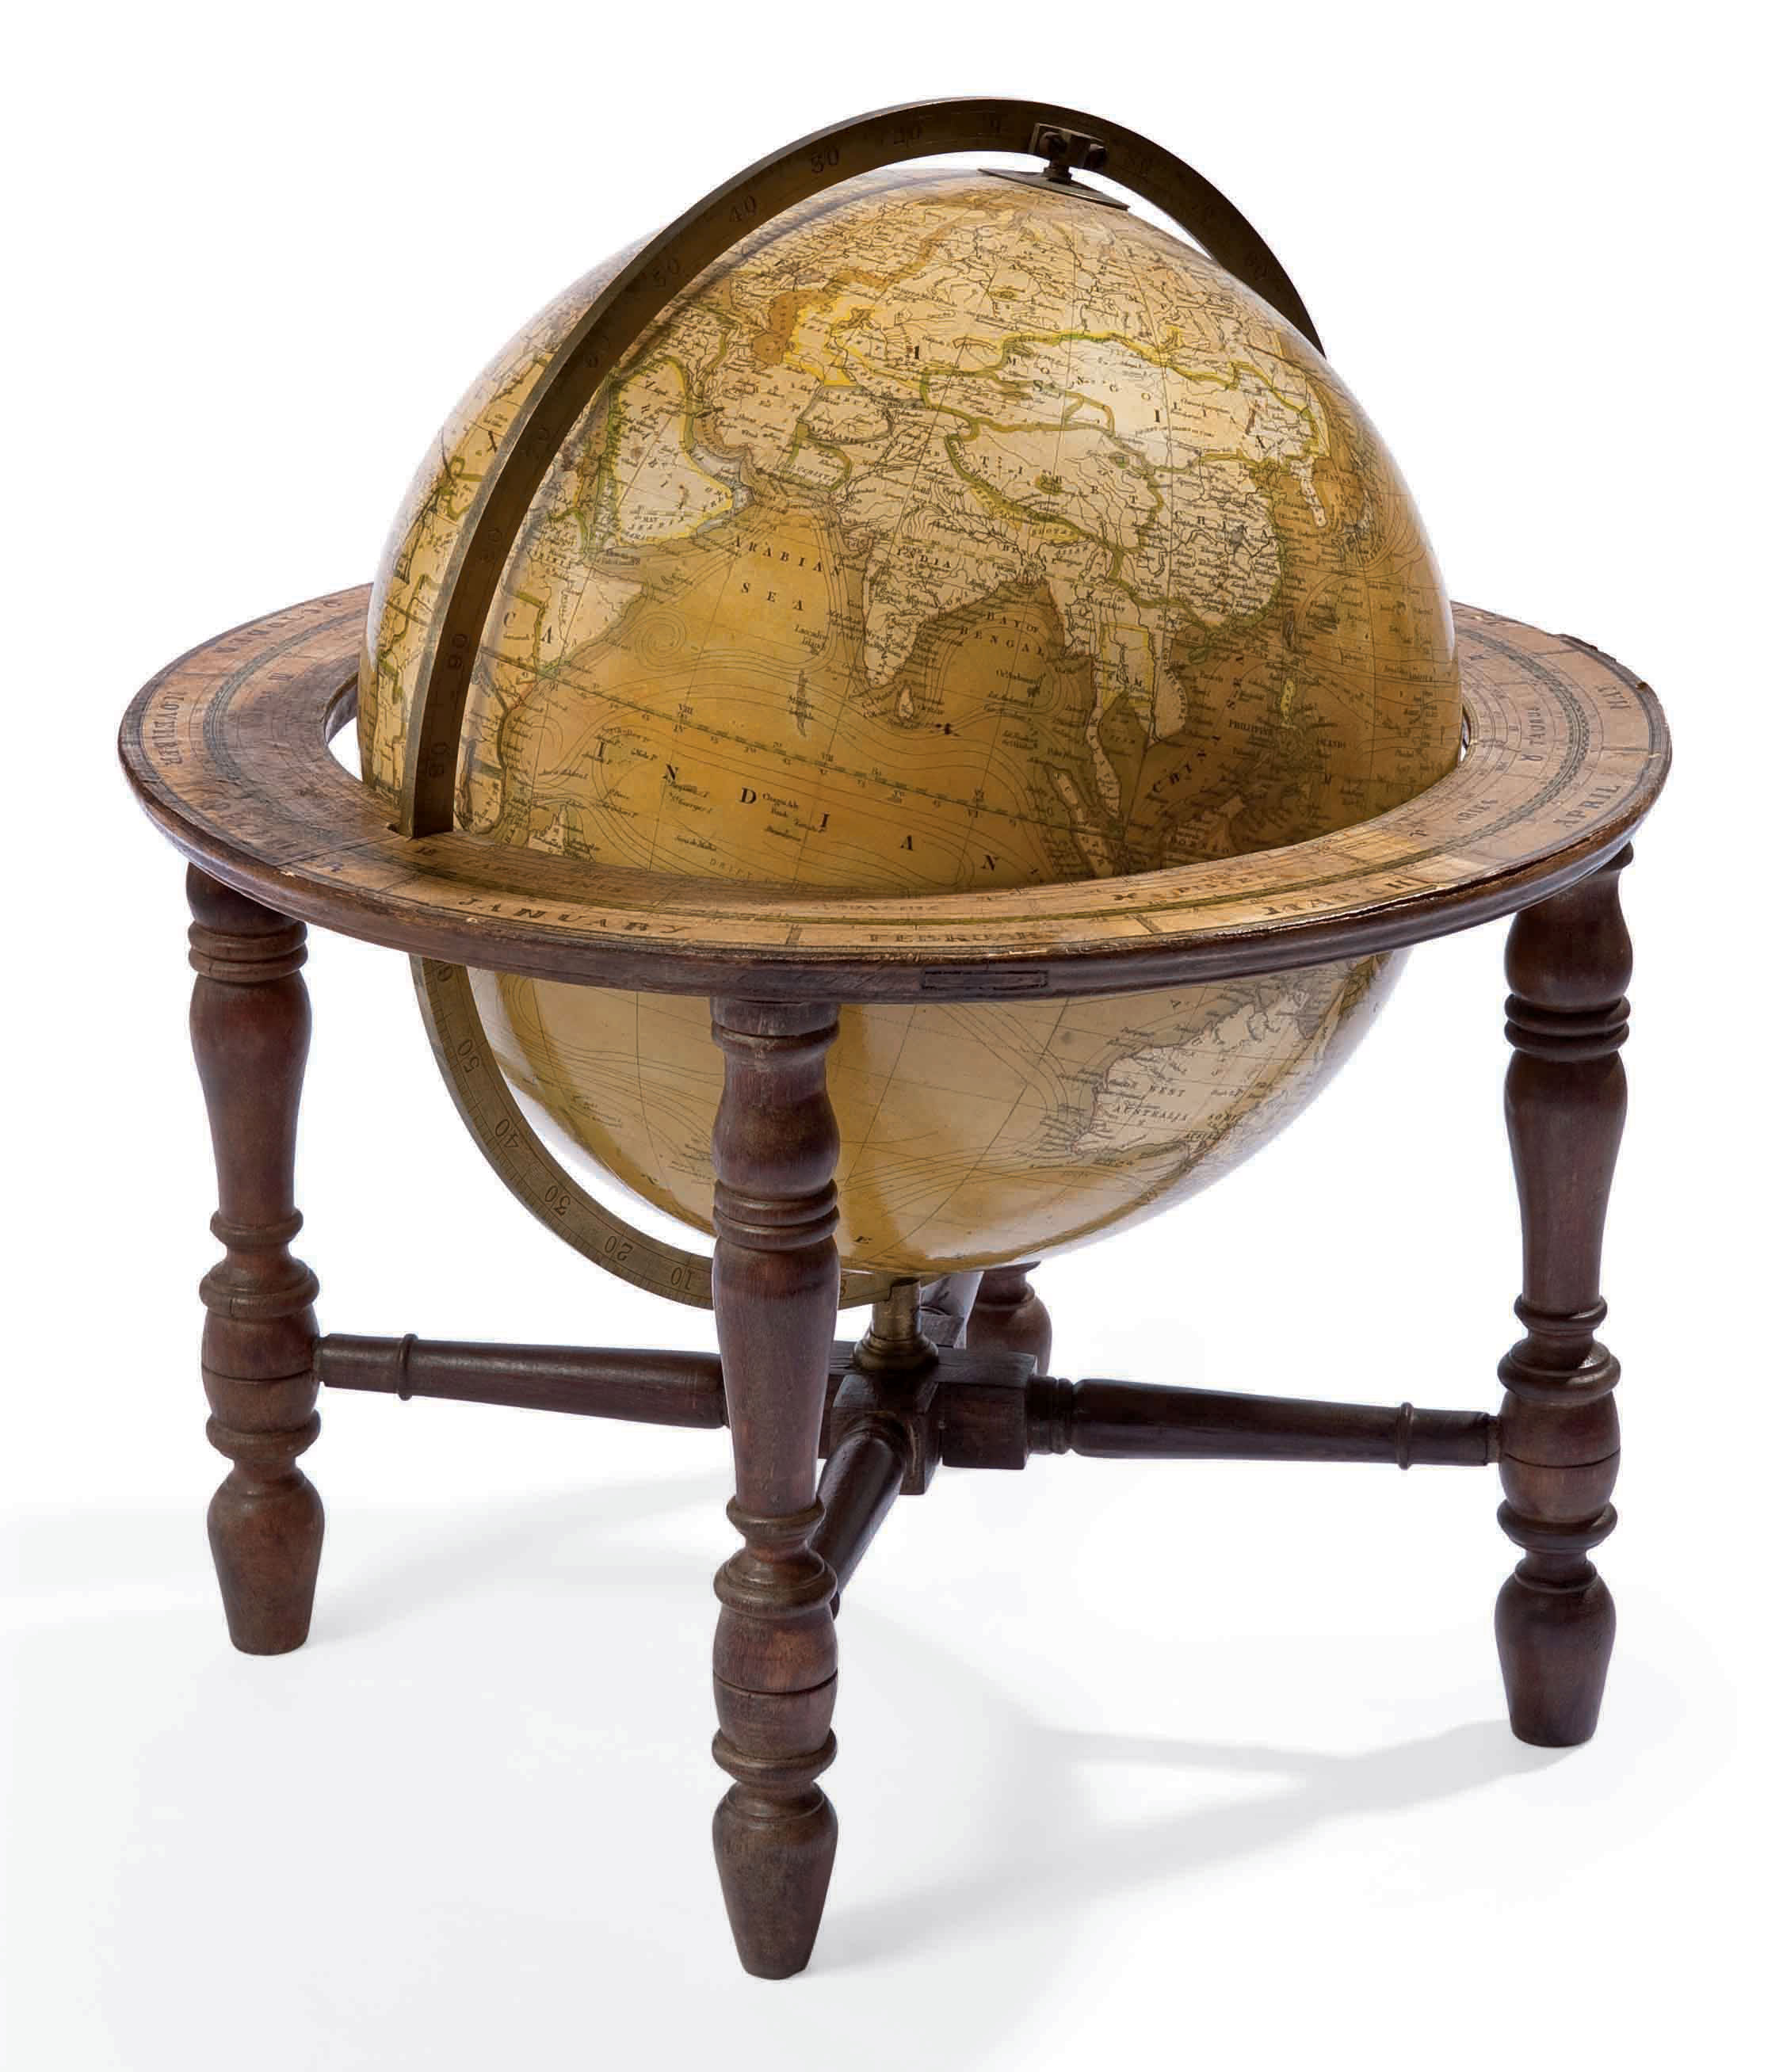 globe terrestre vers 1880 londres par smith and son christie 39 s. Black Bedroom Furniture Sets. Home Design Ideas